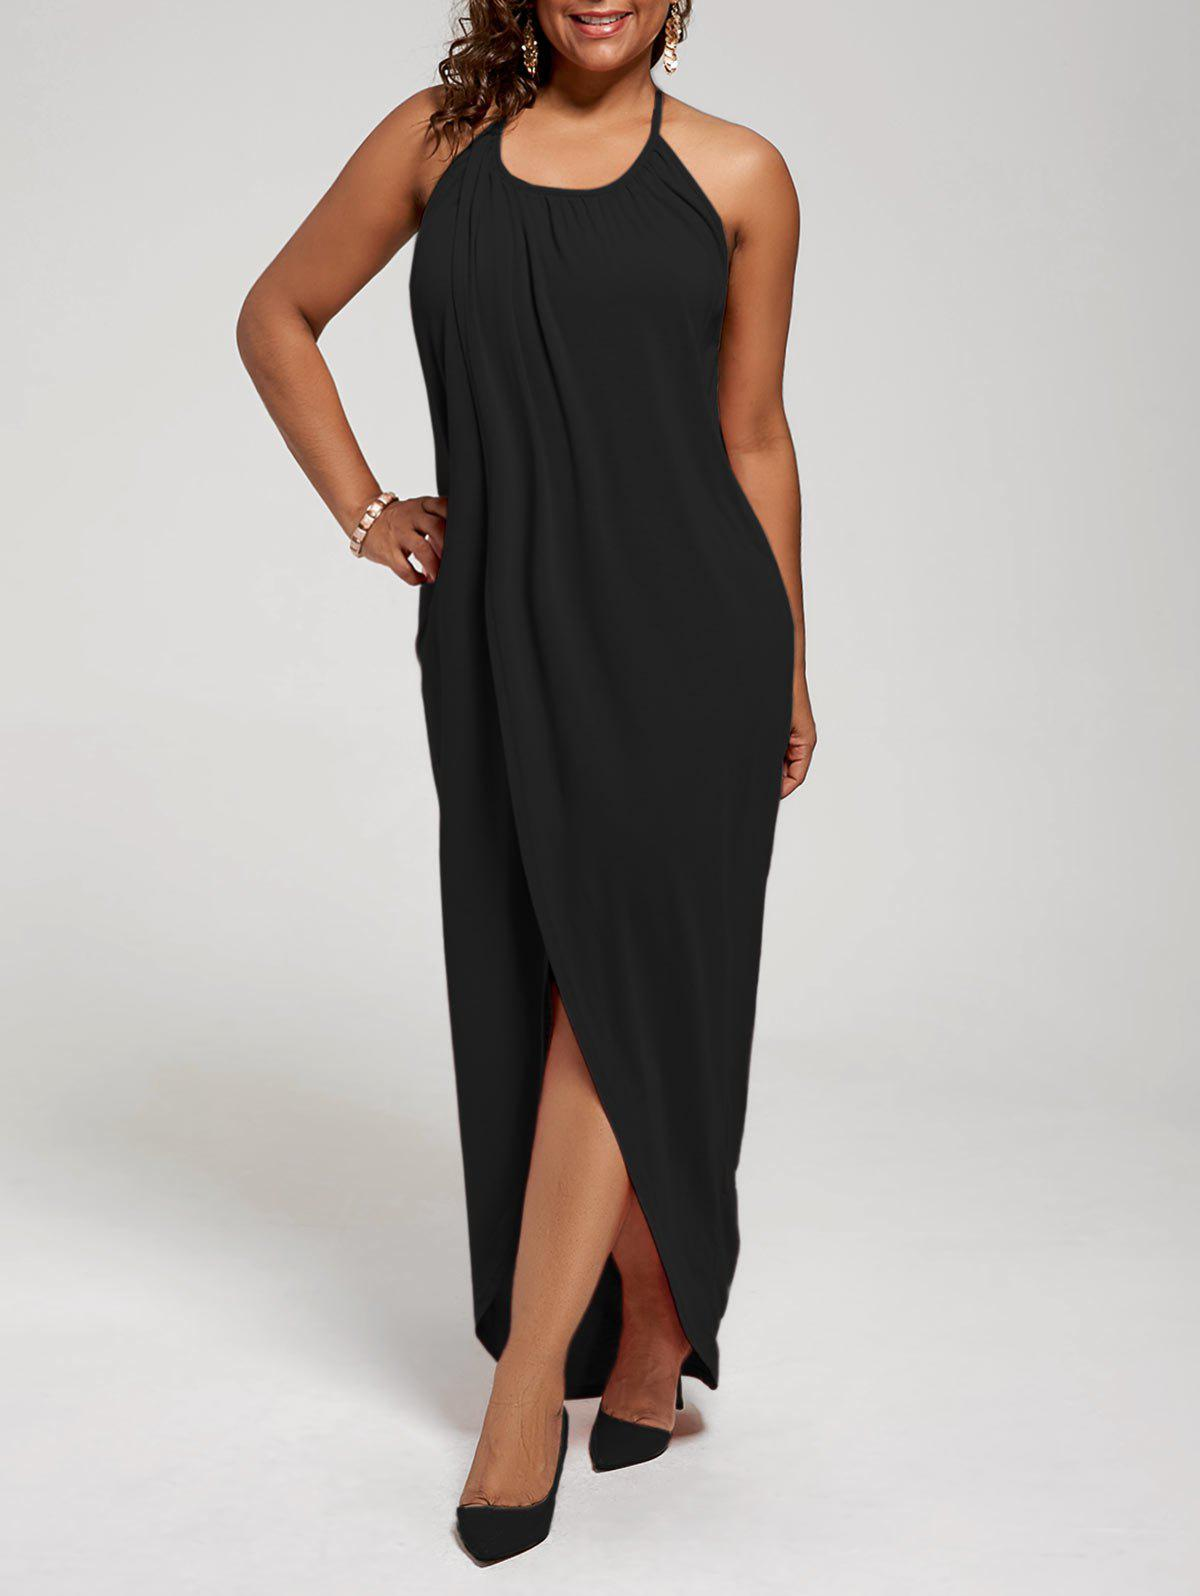 Plus Size Halter High Slit Maxi DressWOMEN<br><br>Size: 5XL; Color: BLACK; Style: Casual; Material: Polyester,Spandex; Silhouette: Sheath; Dresses Length: Ankle-Length; Neckline: Halter; Sleeve Length: Sleeveless; Pattern Type: Solid Color; With Belt: No; Season: Summer; Weight: 0.3500kg; Package Contents: 1 x Dress;